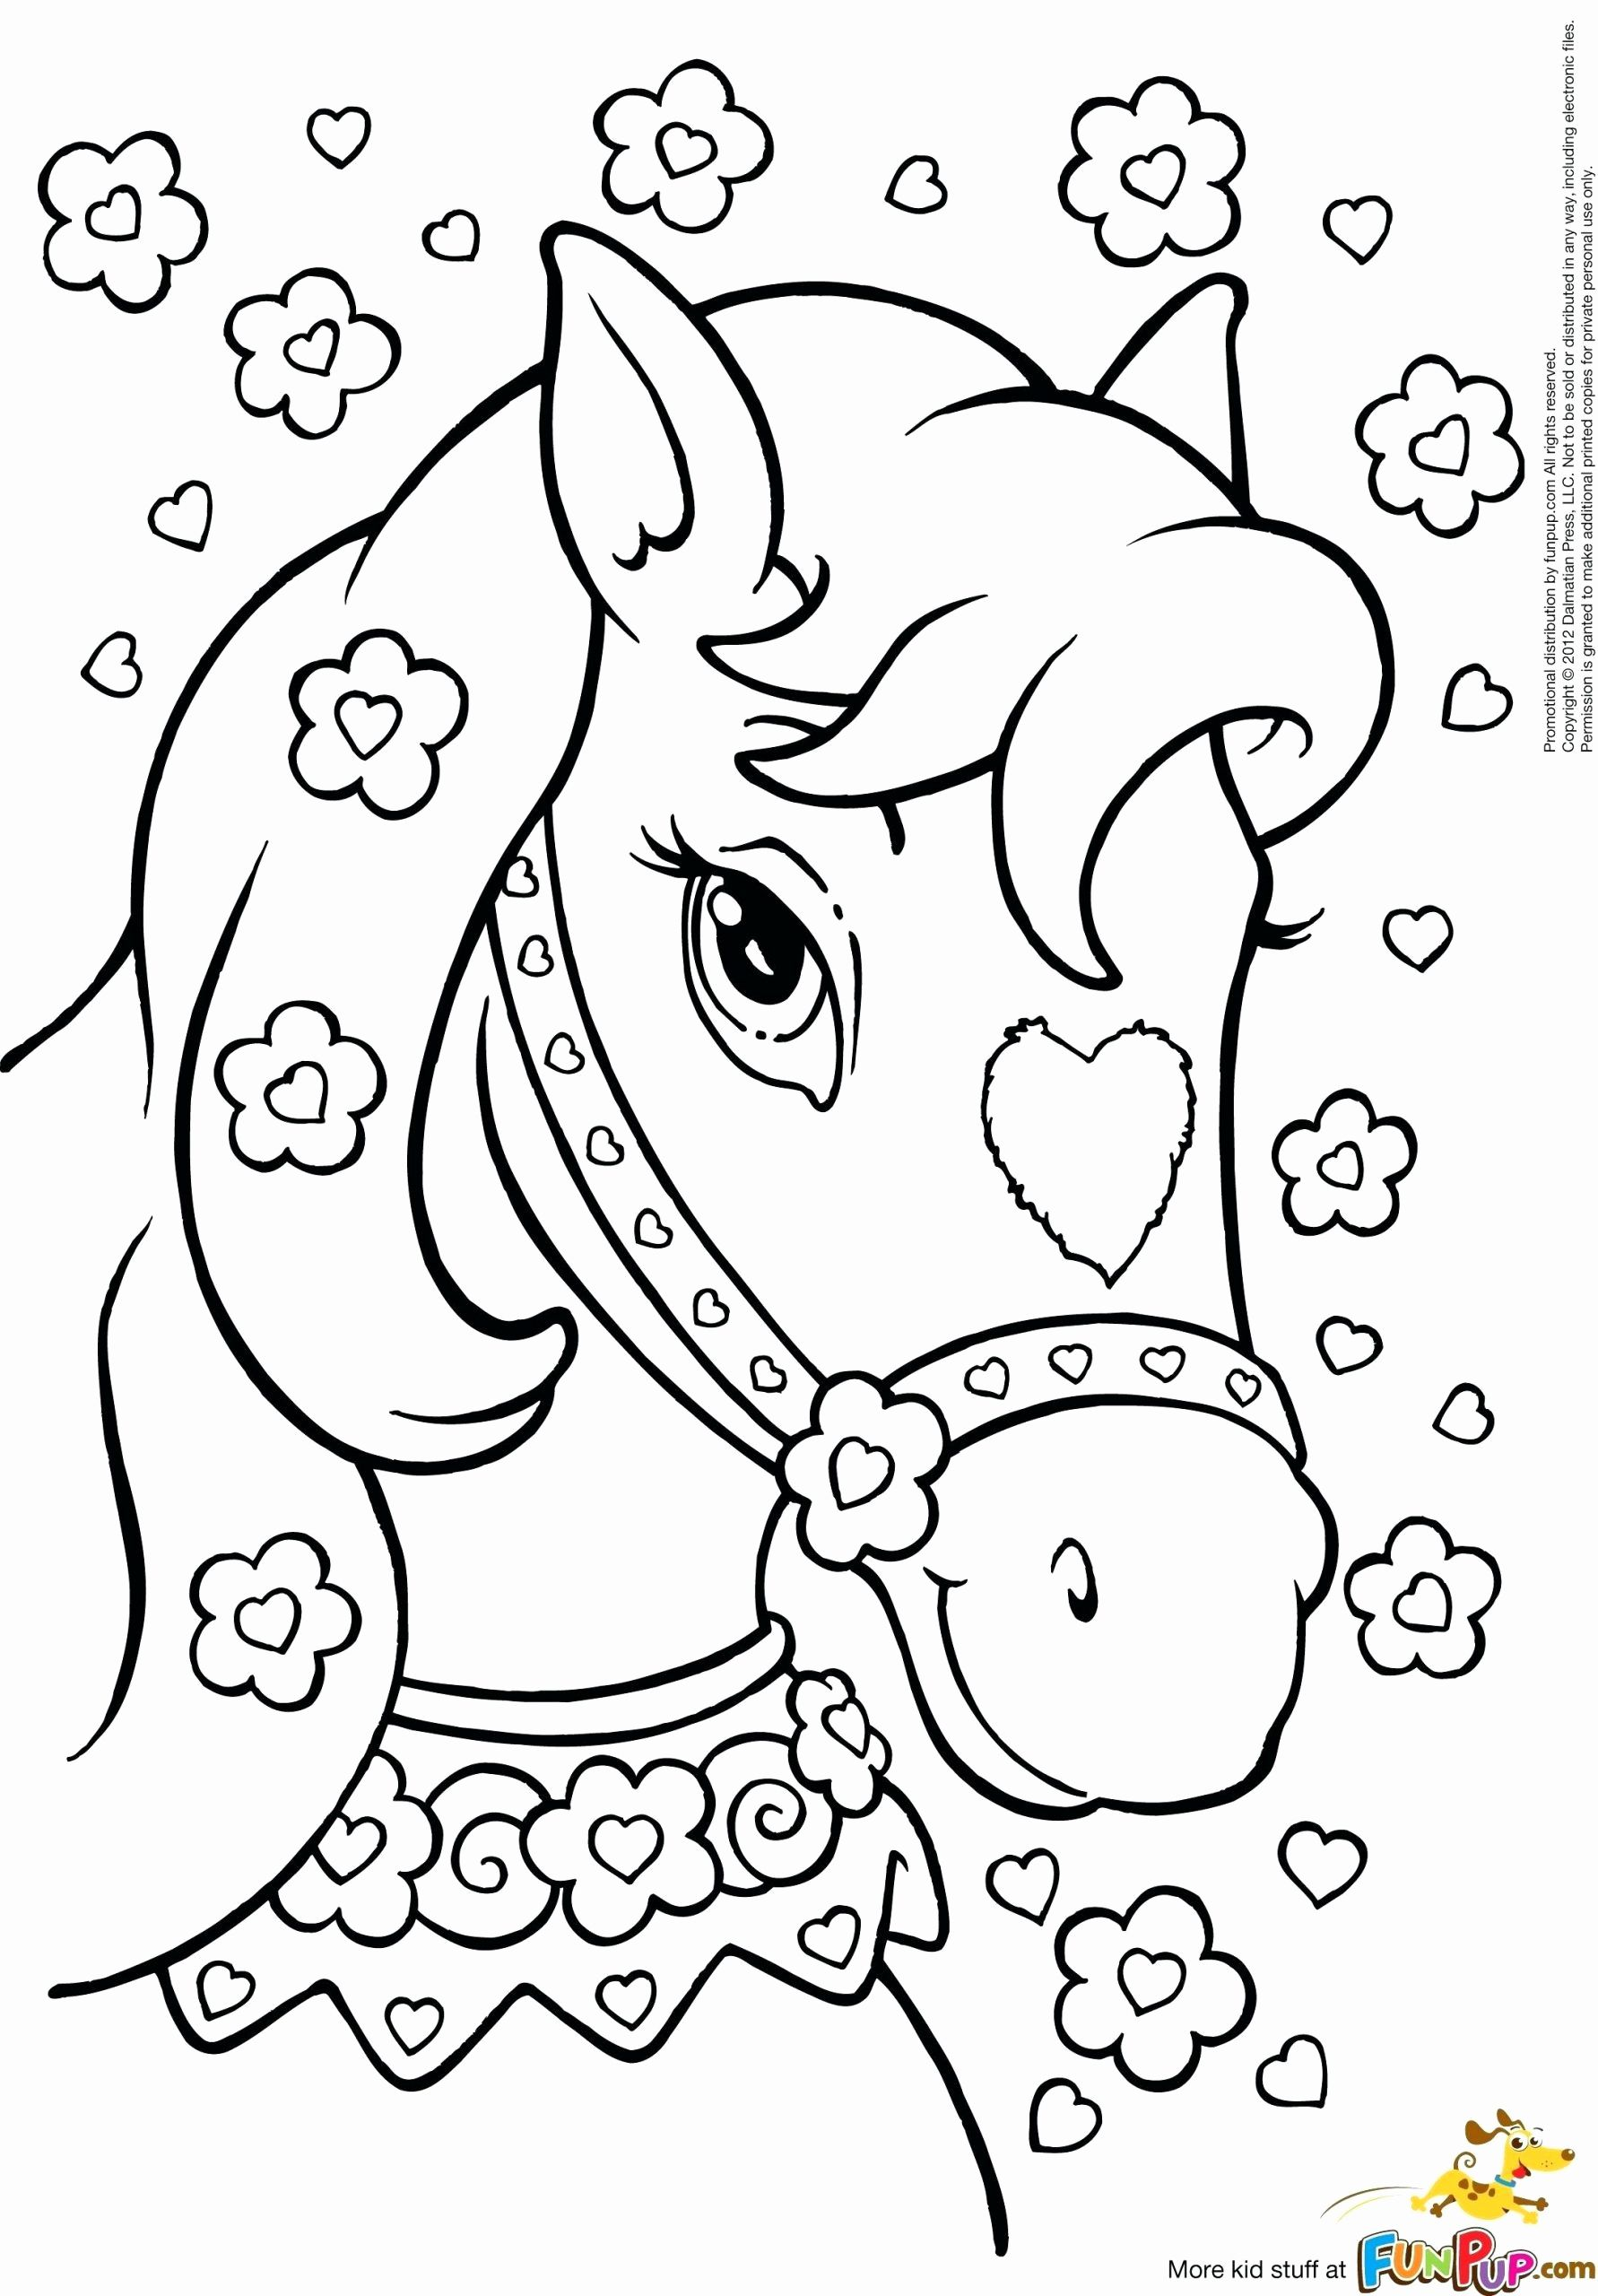 Free Printable Disney Coloring Pages For Girls Kids